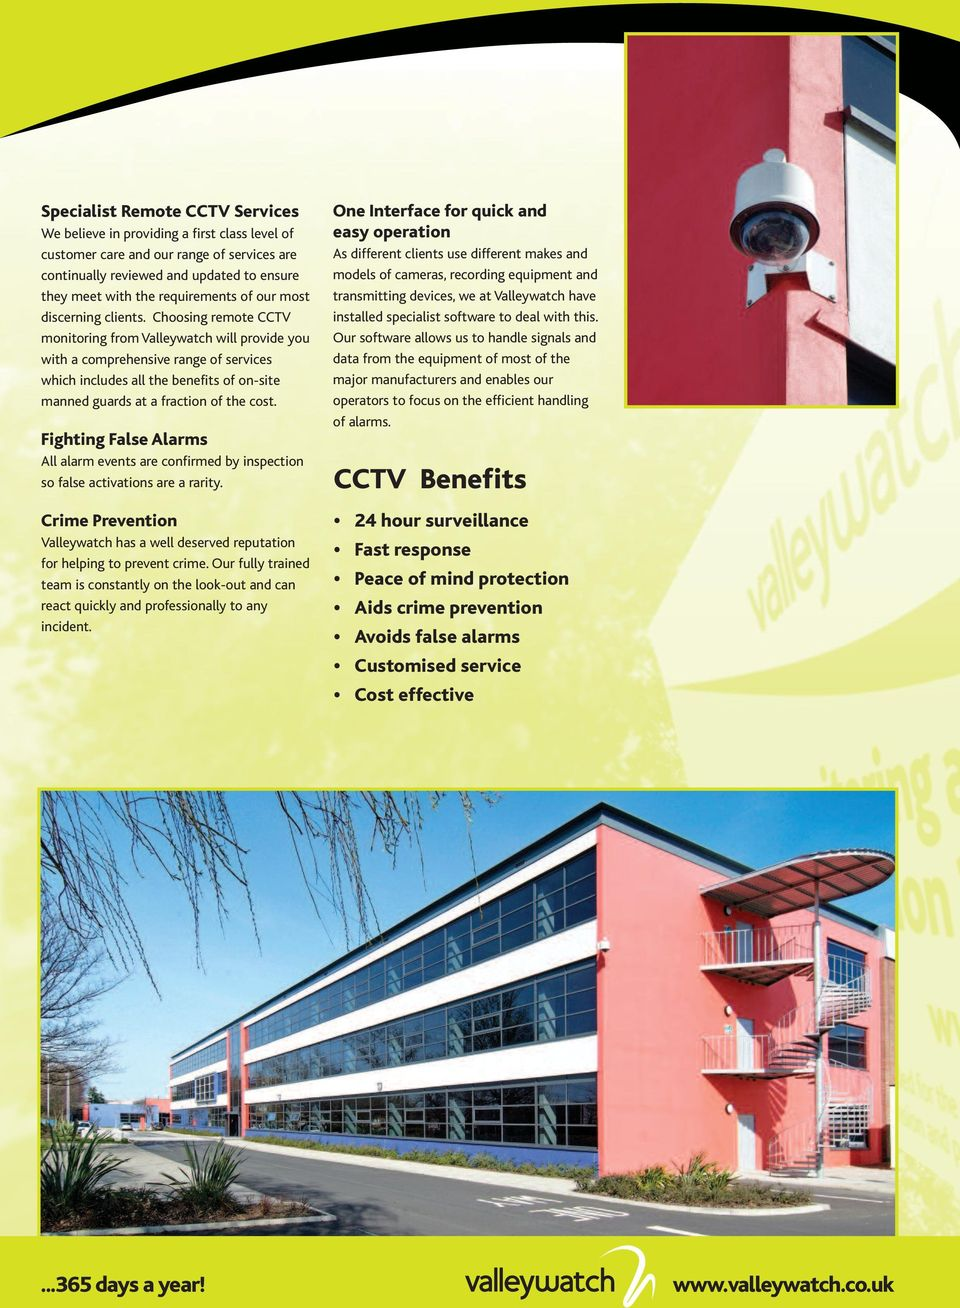 Choosing remote CCTV monitoring from Valleywatch will provide you with a comprehensive range of services which includes all the benefits of on-site manned guards at a fraction of the cost.